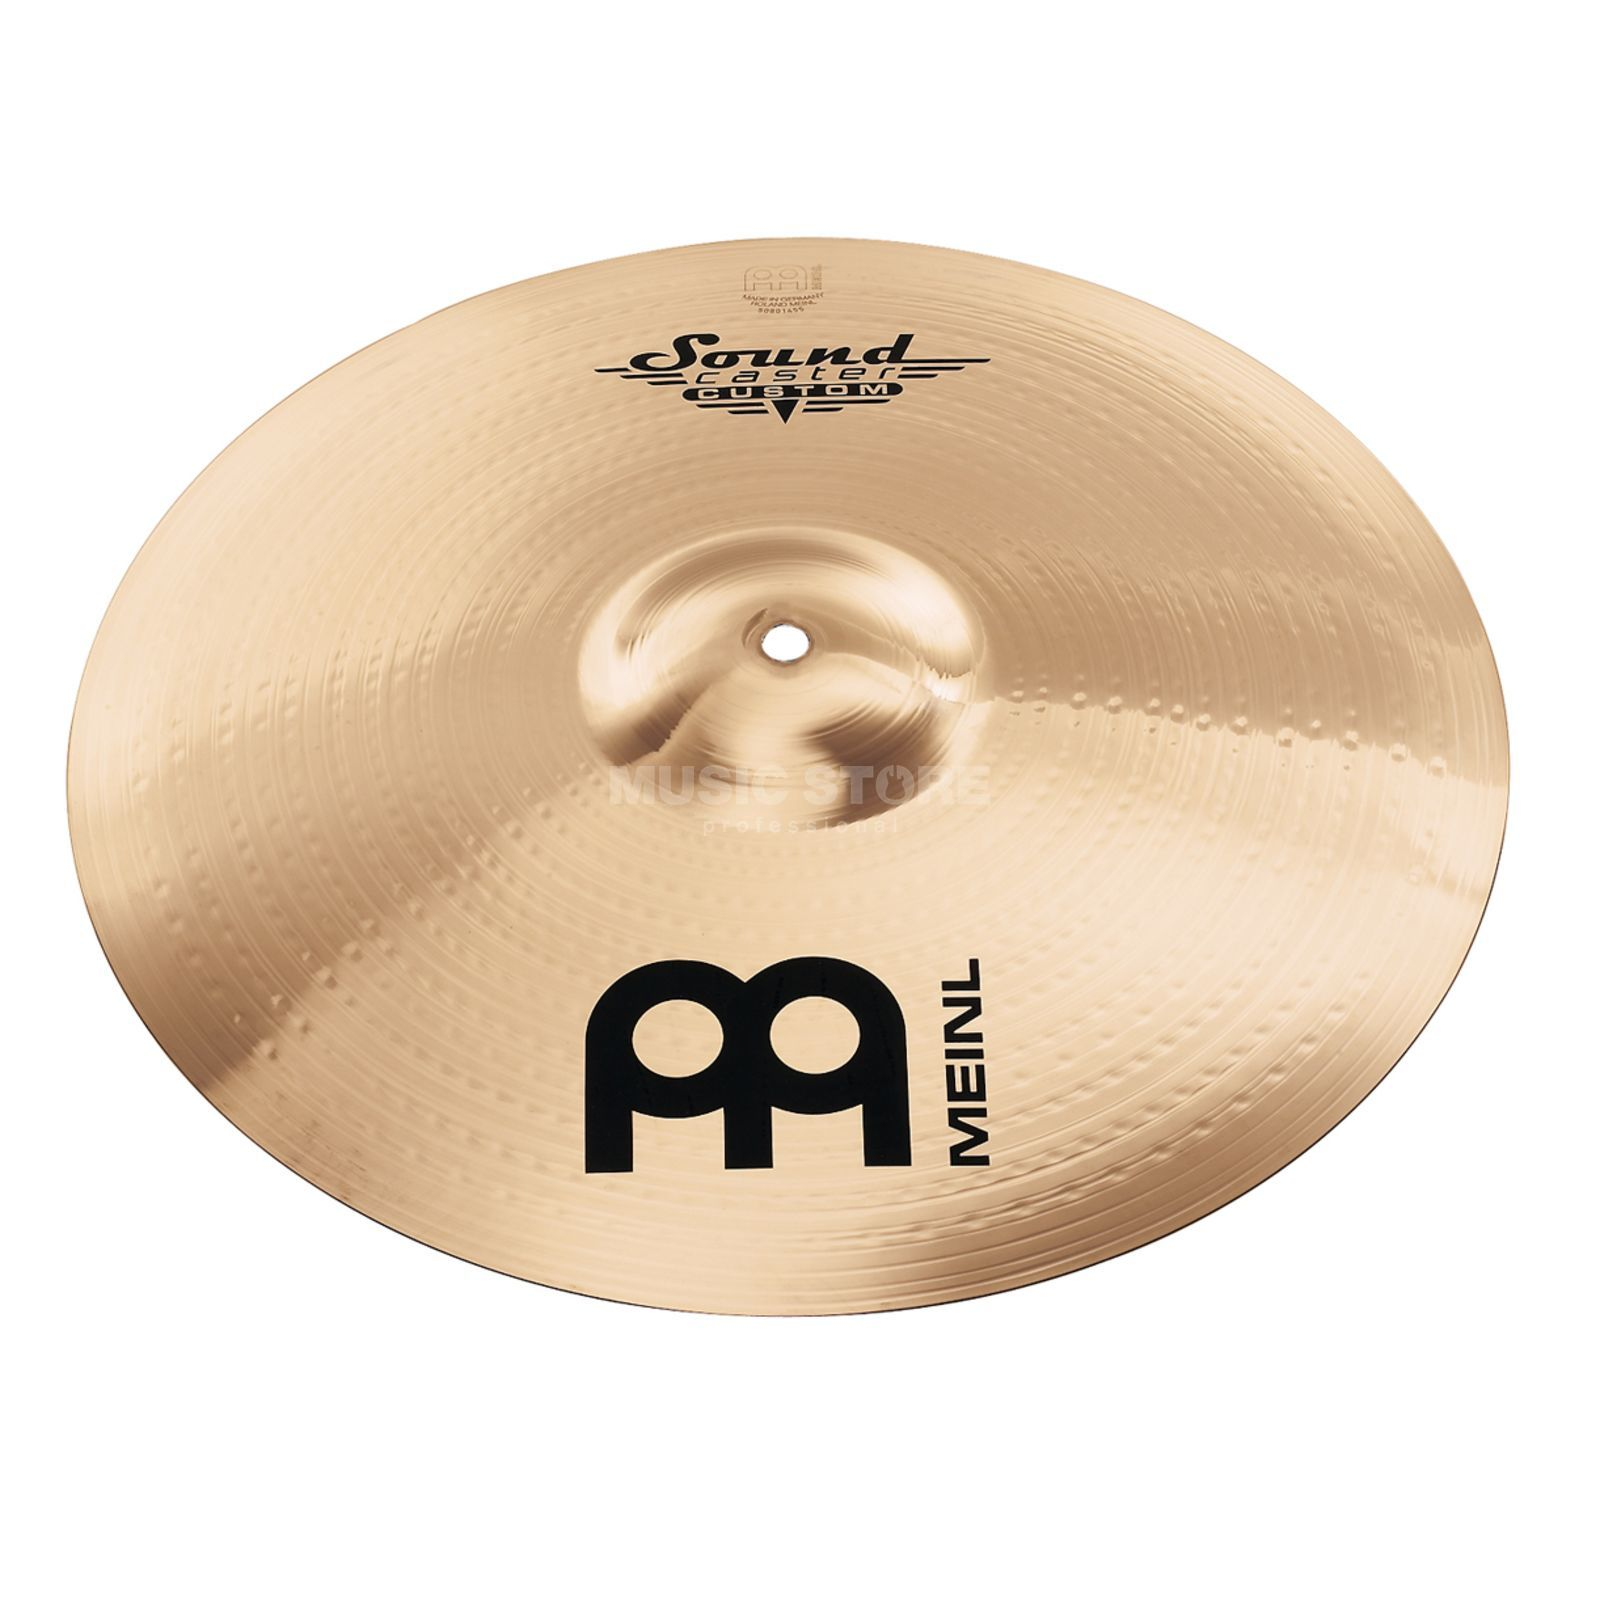 "Meinl SoundCaster Custom Crash 19"" SC19PC-B, Powerful Image du produit"